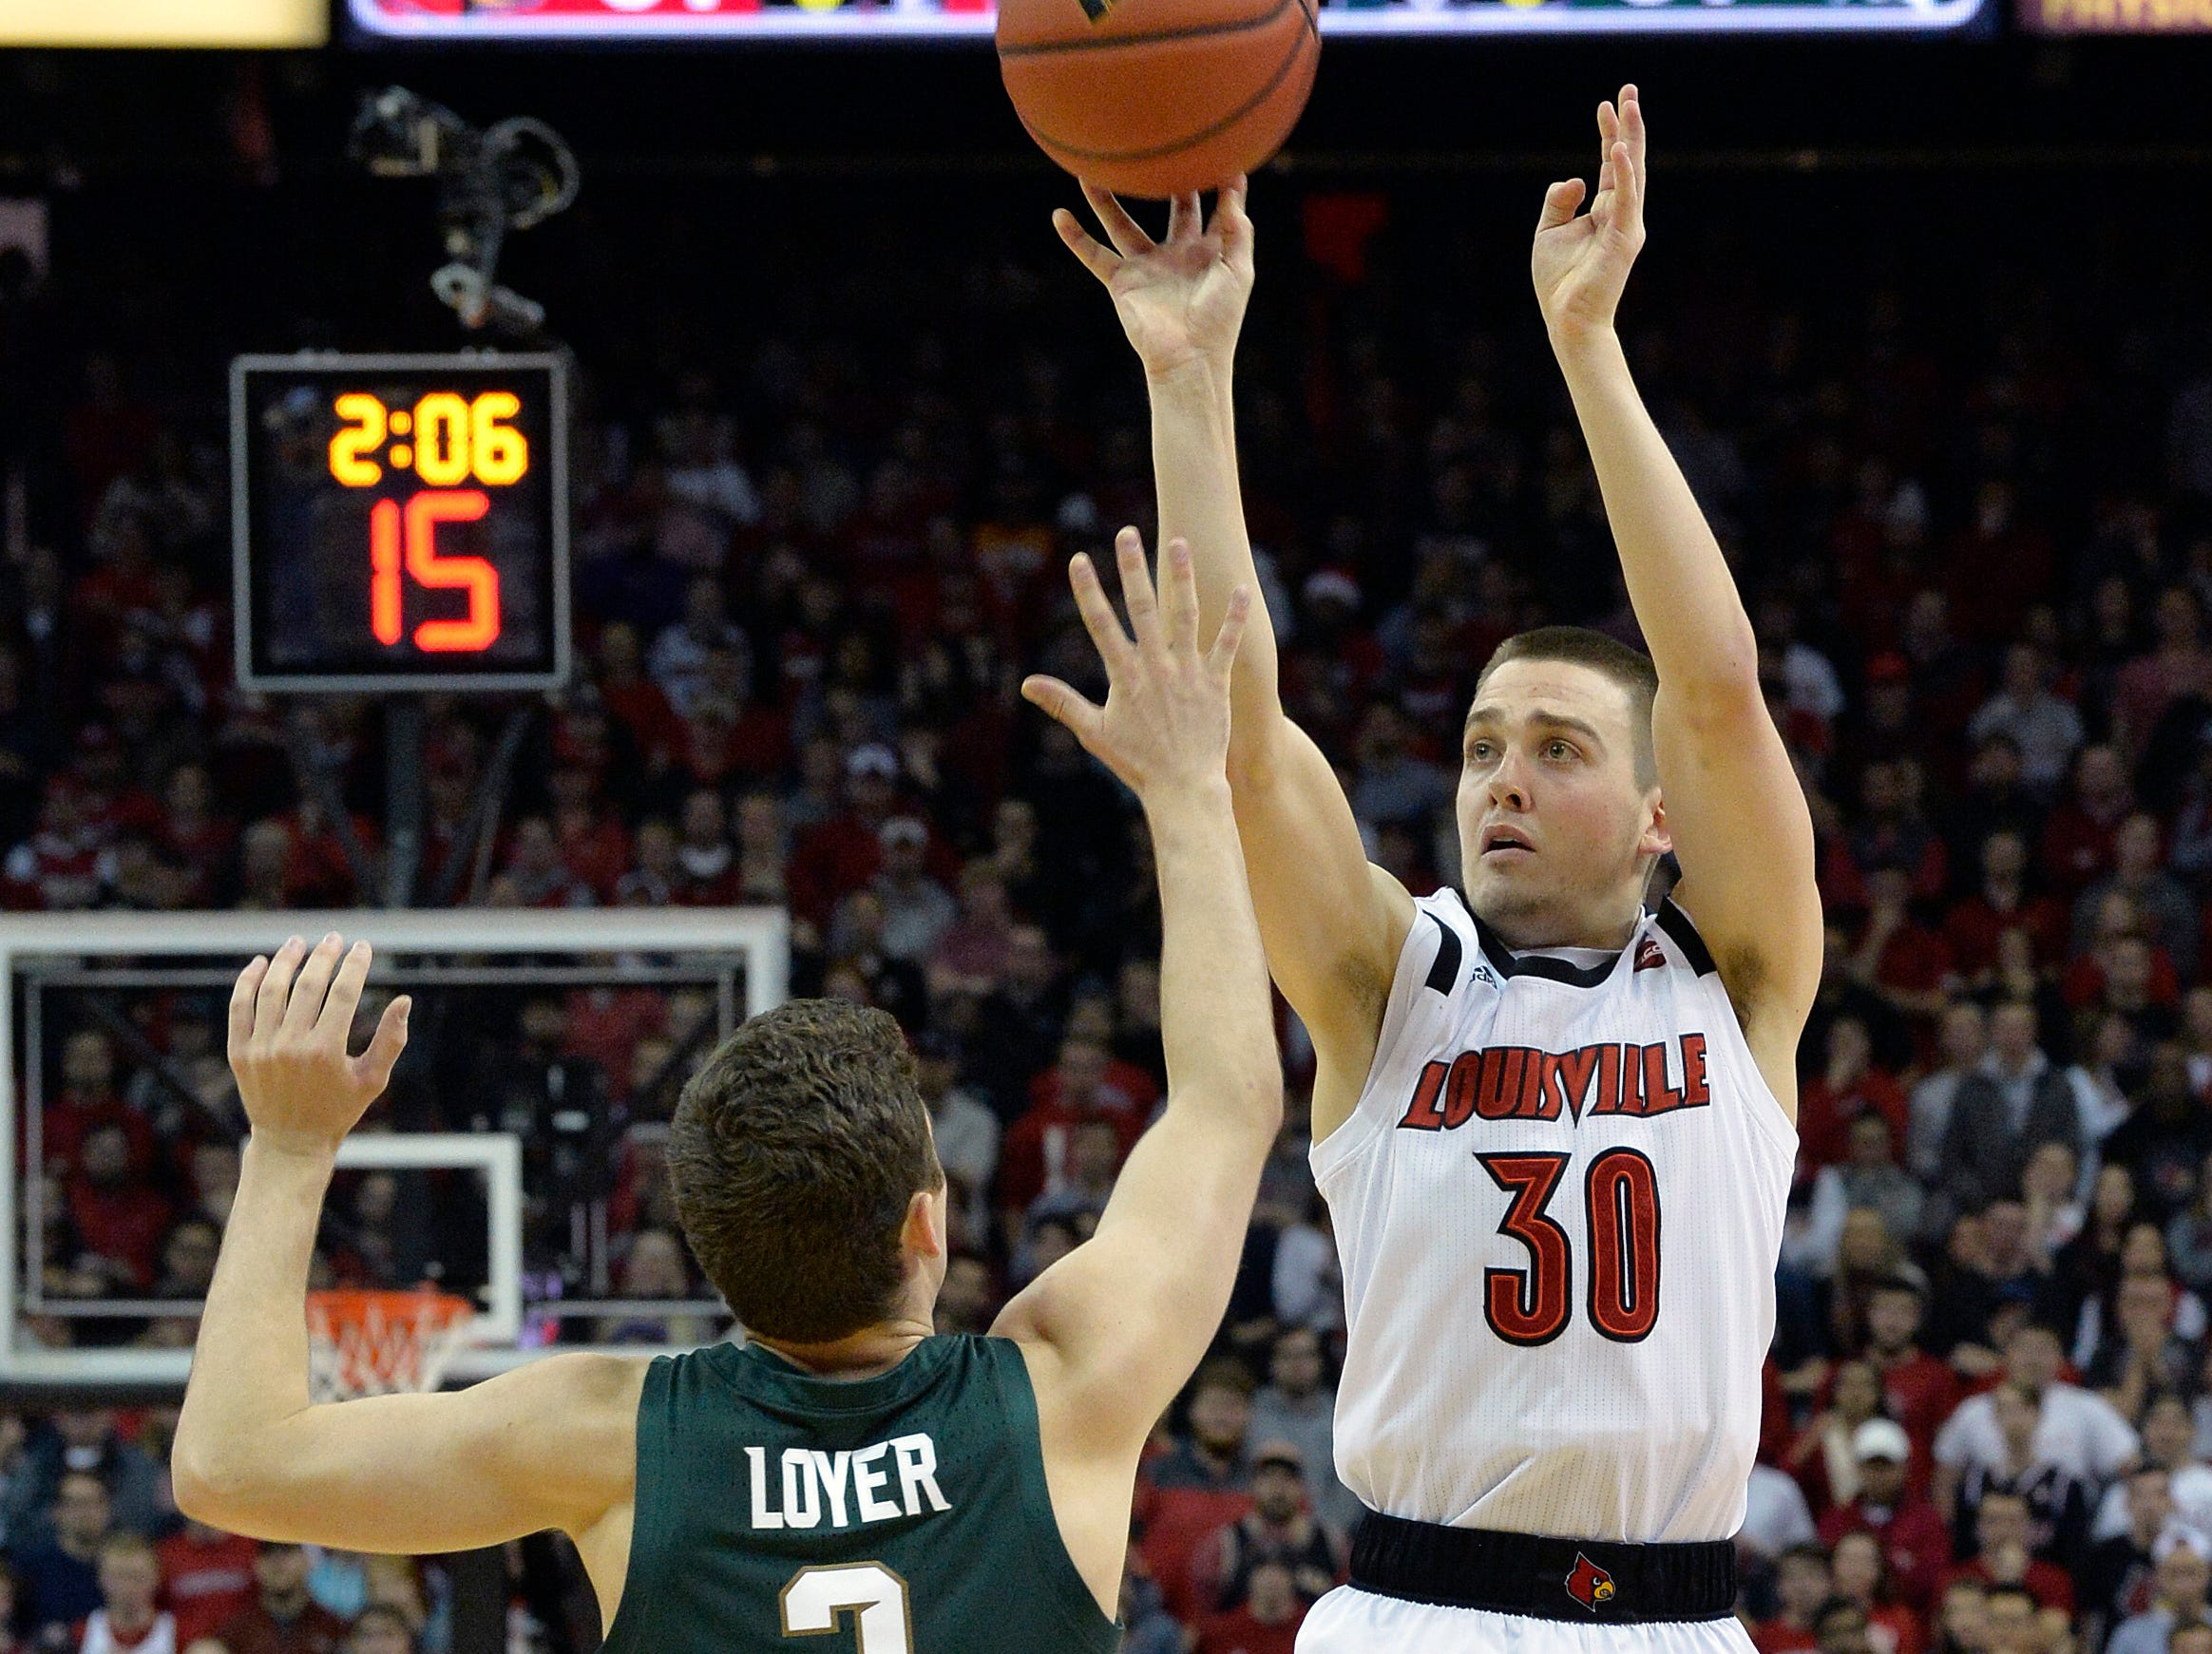 Louisville guard Ryan McMahon (30) attempts a three point shot over the defense of Michigan State guard Foster Loyer (3) during the second half.